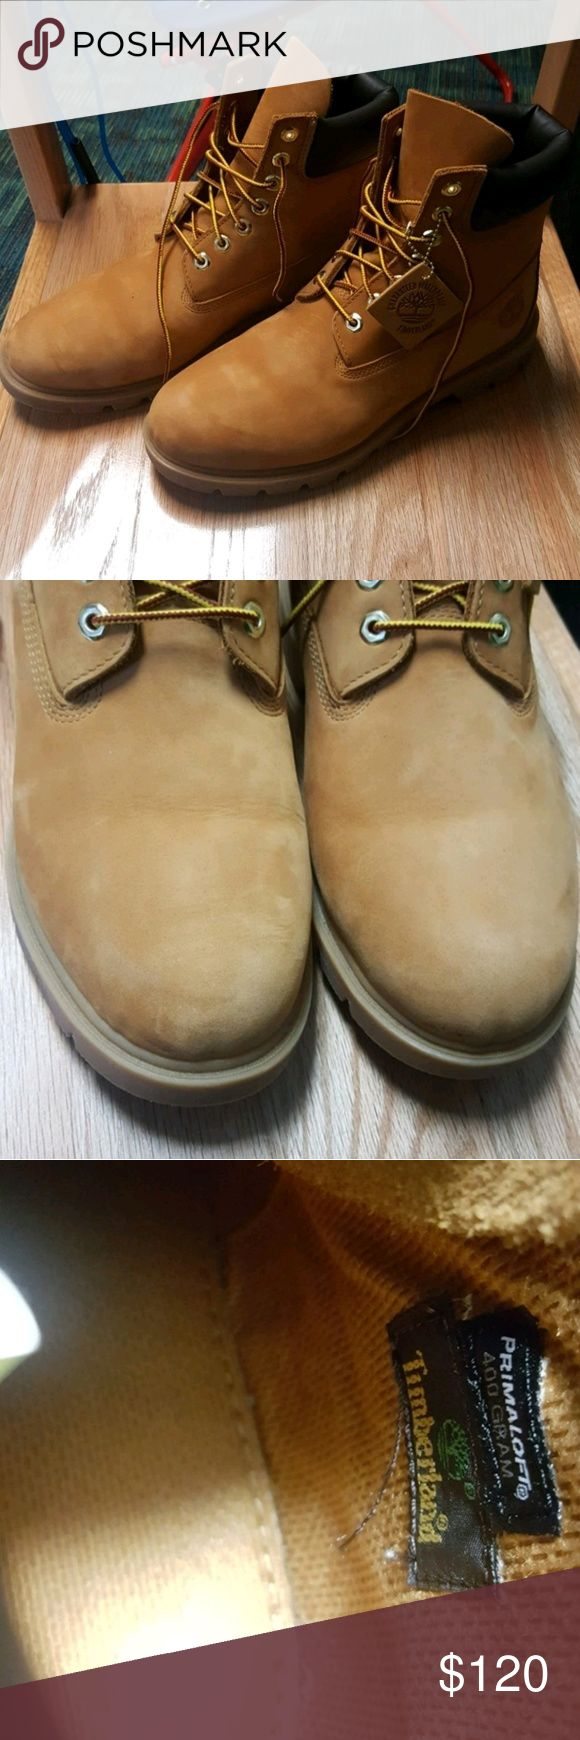 Today only! Sale! Timberland 6in boots New! AUTHENTIC. Too big for me. Timberland Shoes Boots